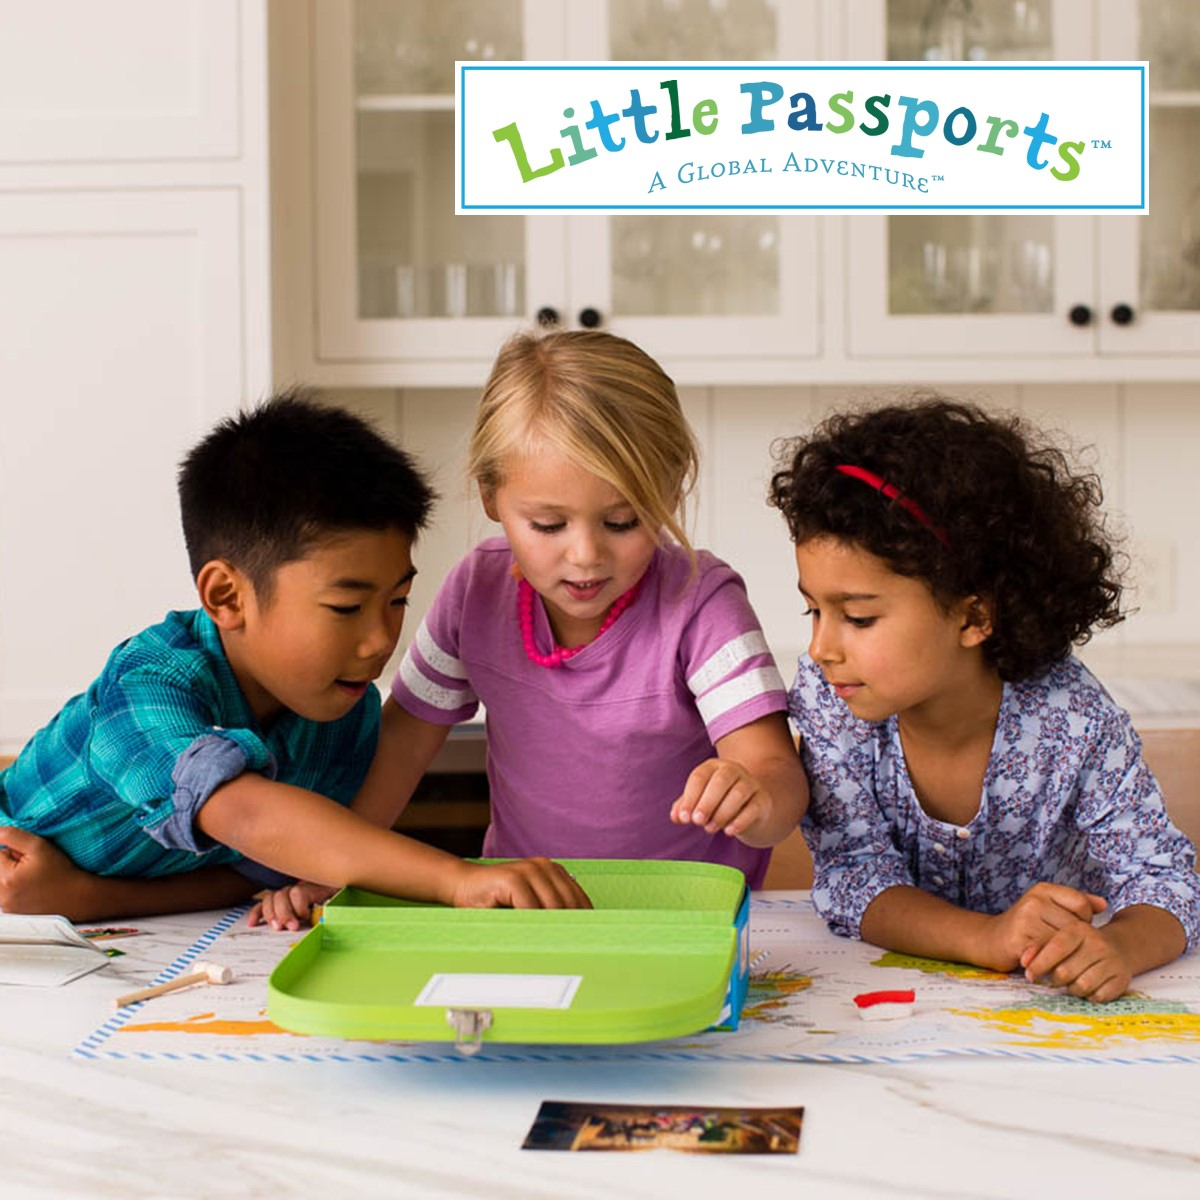 Three kids playing with little passports